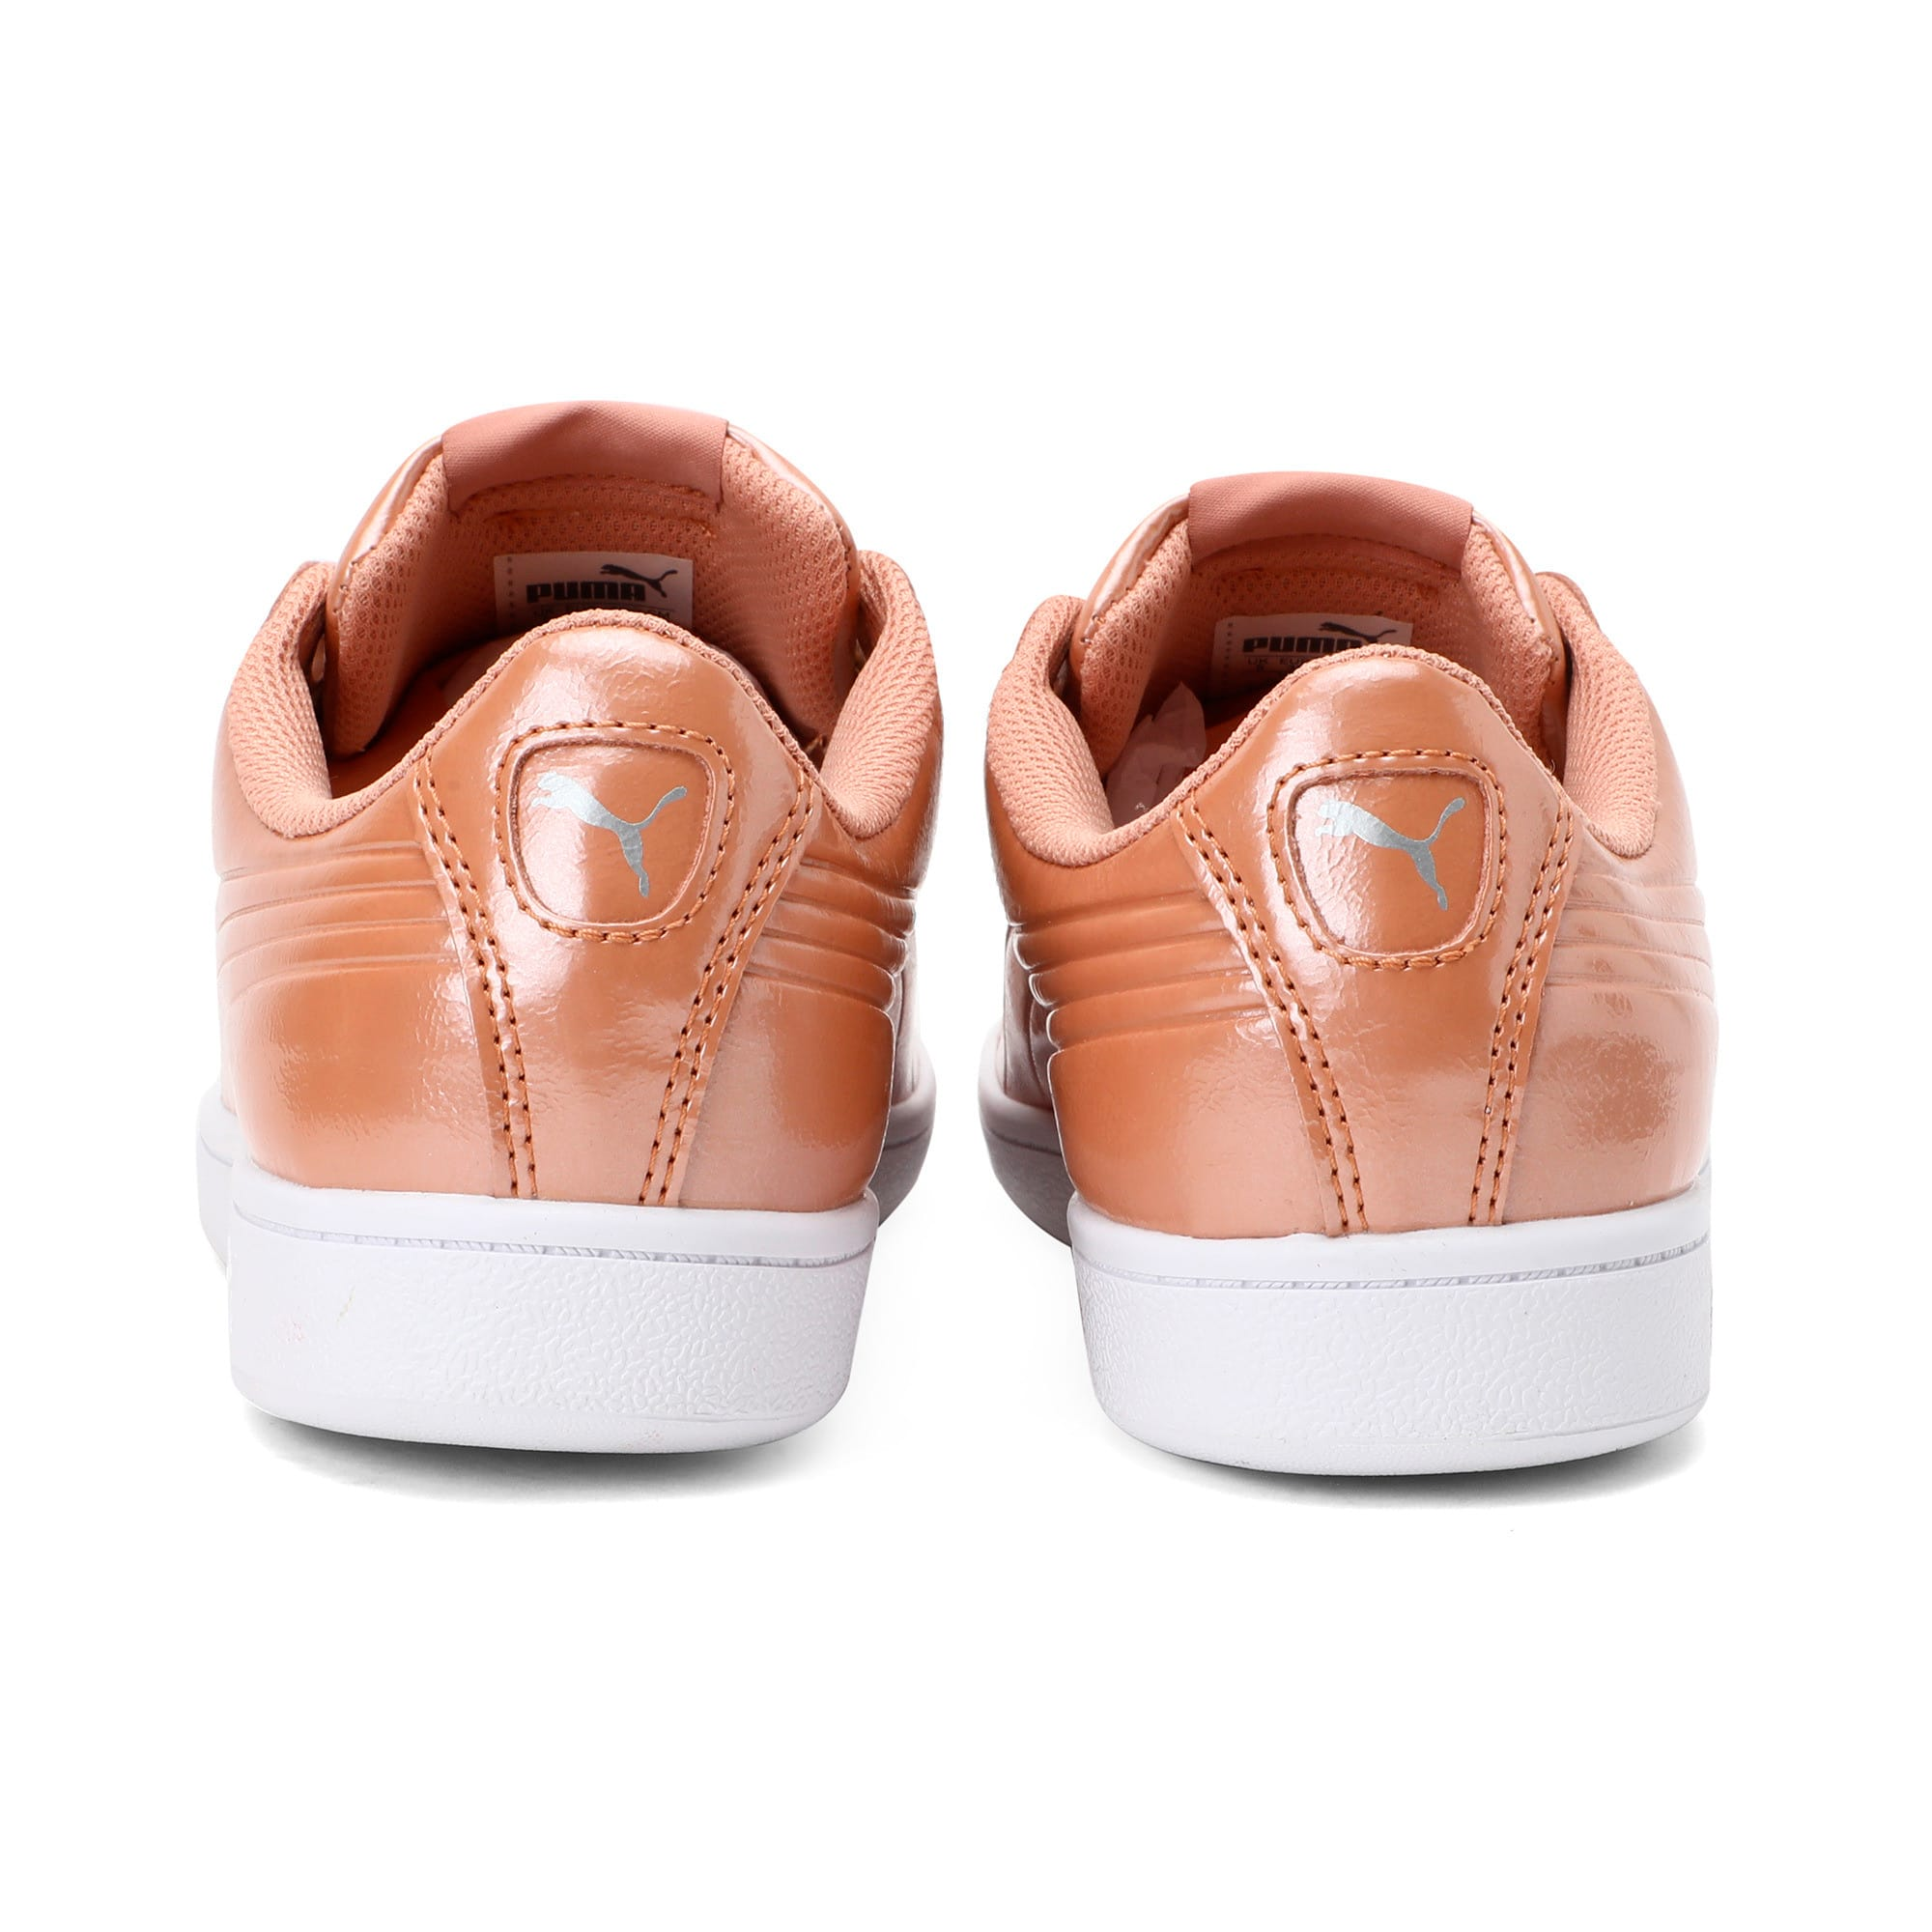 Thumbnail 3 of Vikky Ribbon Patent Women's Trainers, Dusty Coral-Dusty Coral, medium-IND